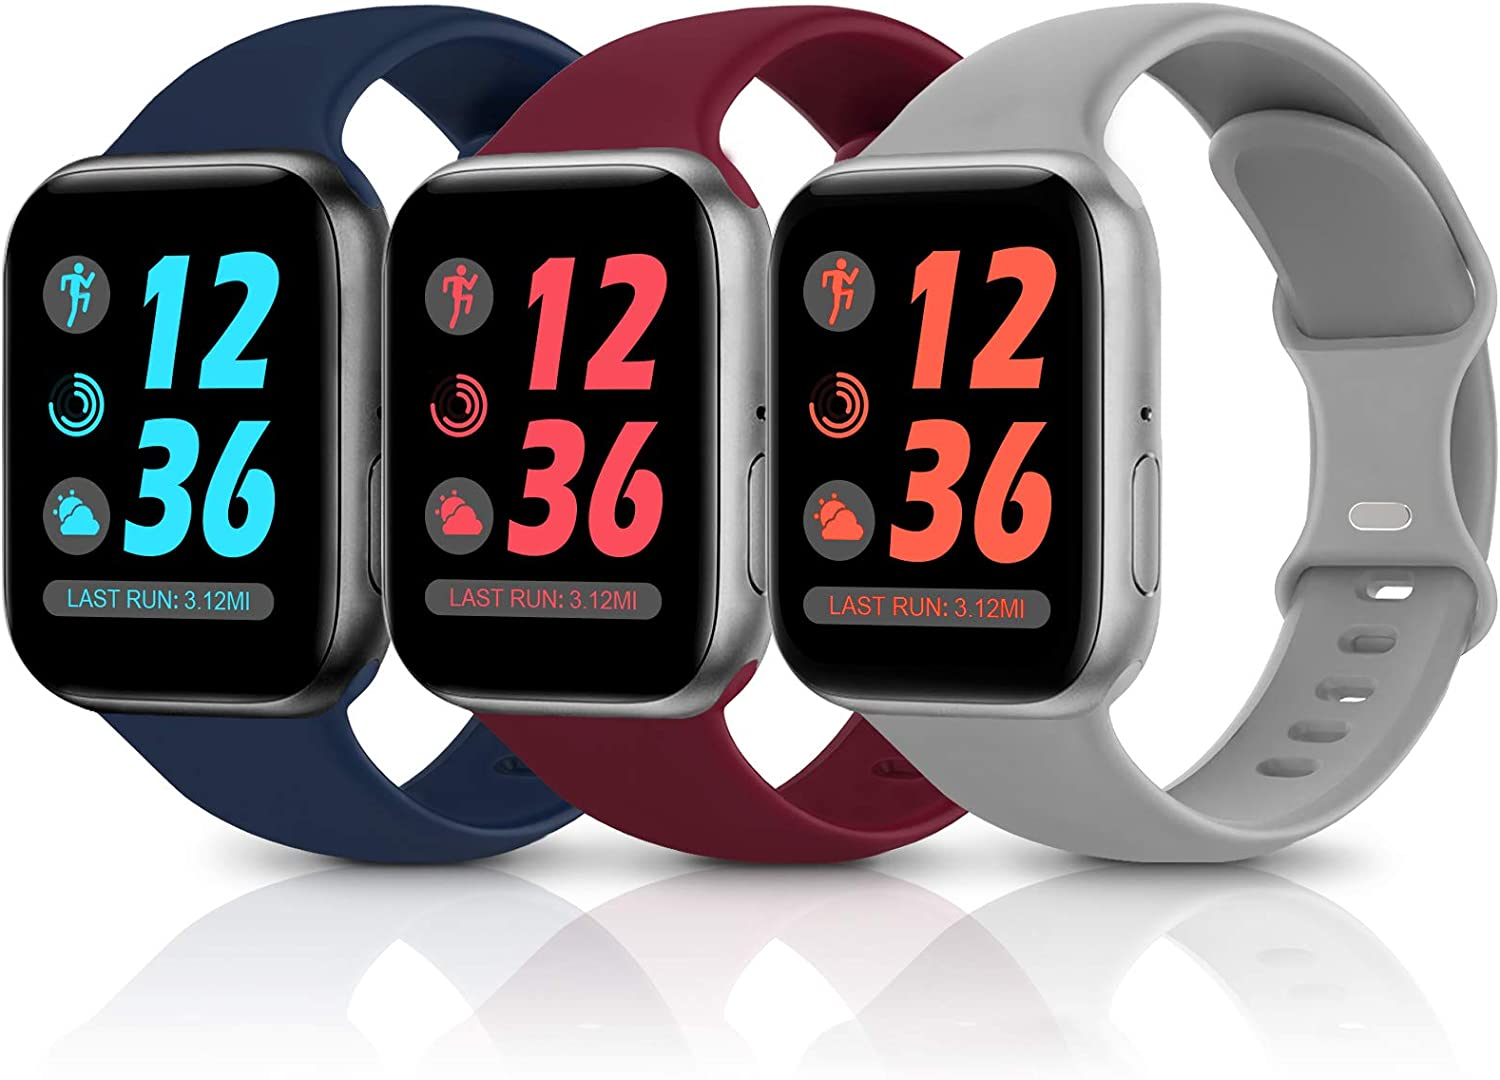 Sport Silicone Band Compatible with Apple Watch Bands 38mm 40mm 42mm 44mm,Soft Replacement Wristbands for iWatch Series 1/2/3/4/5/6/SE,Women Men,3 Pack(Wine Red/Navy Blue/Grey,42mm/44mm-S/M)